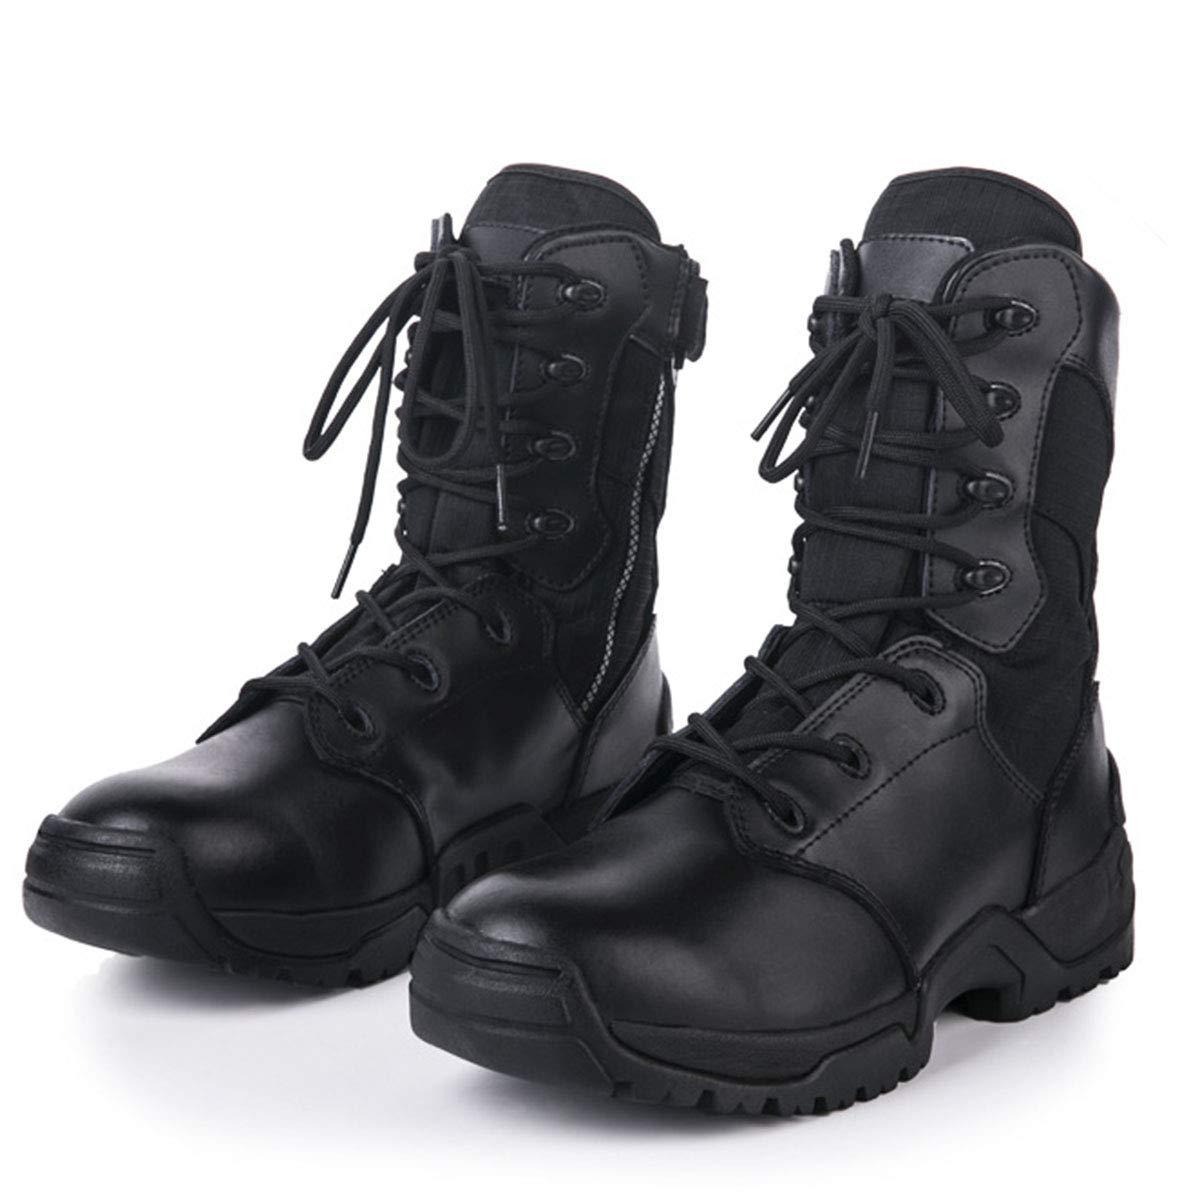 Leder Army Patrol Taktische Action Combat Stiefel Stiefel Stiefel Flache Niedrige Ferse Lace Up Combat Army Military Ankle Stiefel Größe 31bc0e